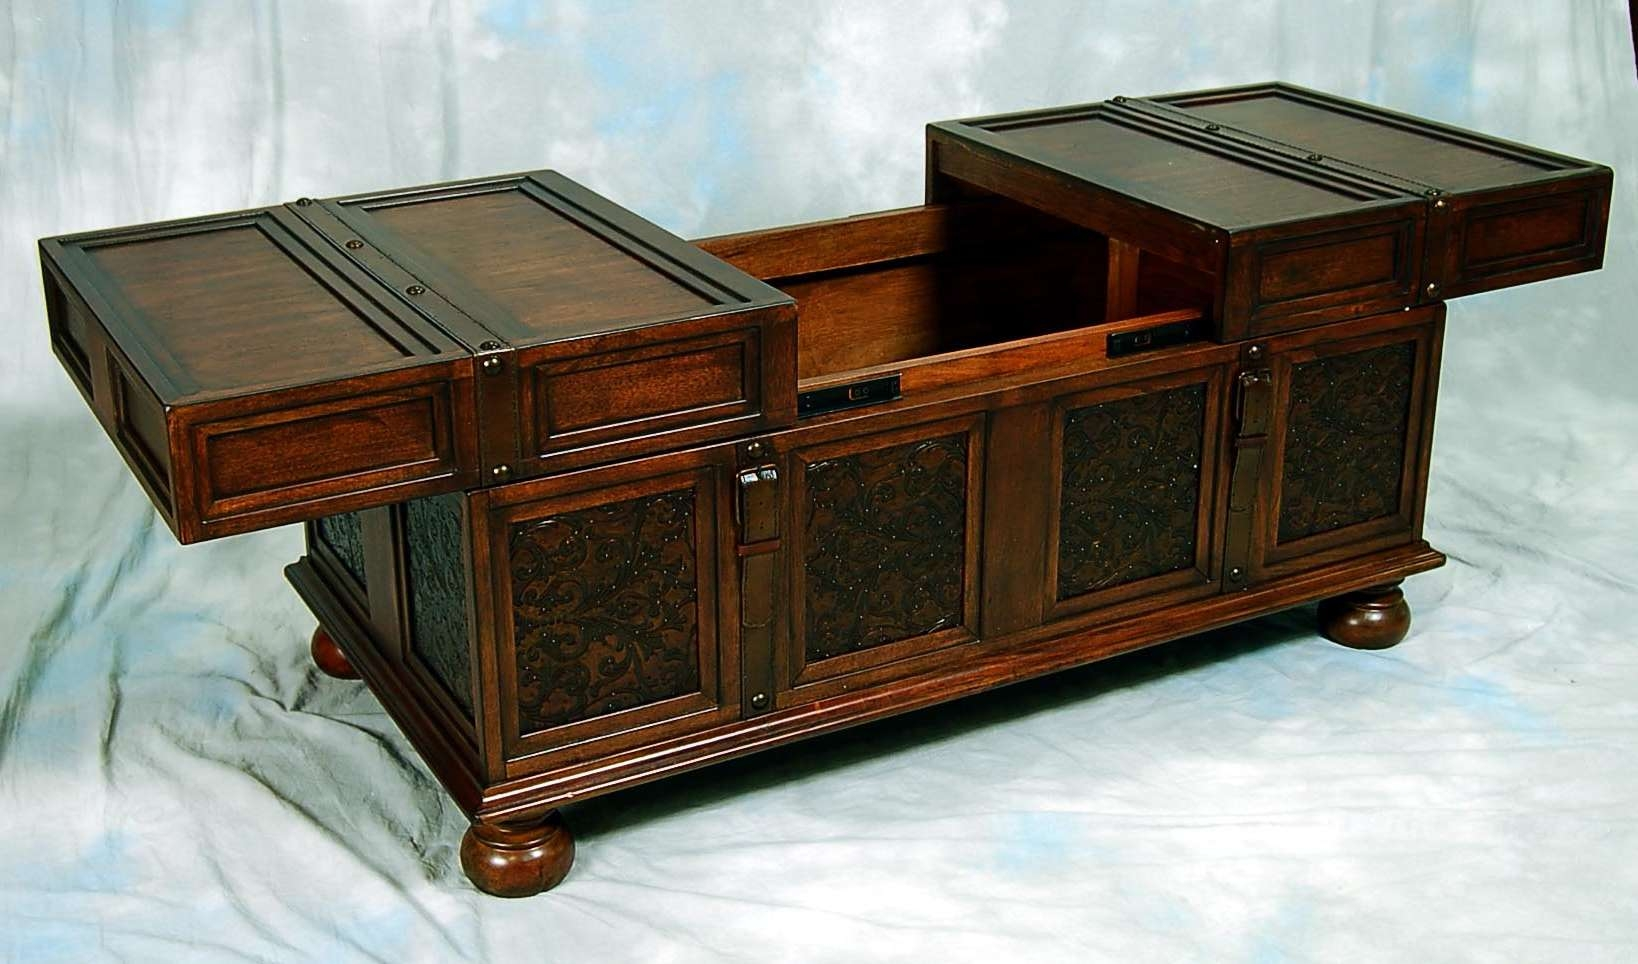 Well Known Storage Trunk Coffee Tables Intended For Storage Chest Coffee Table (View 20 of 20)